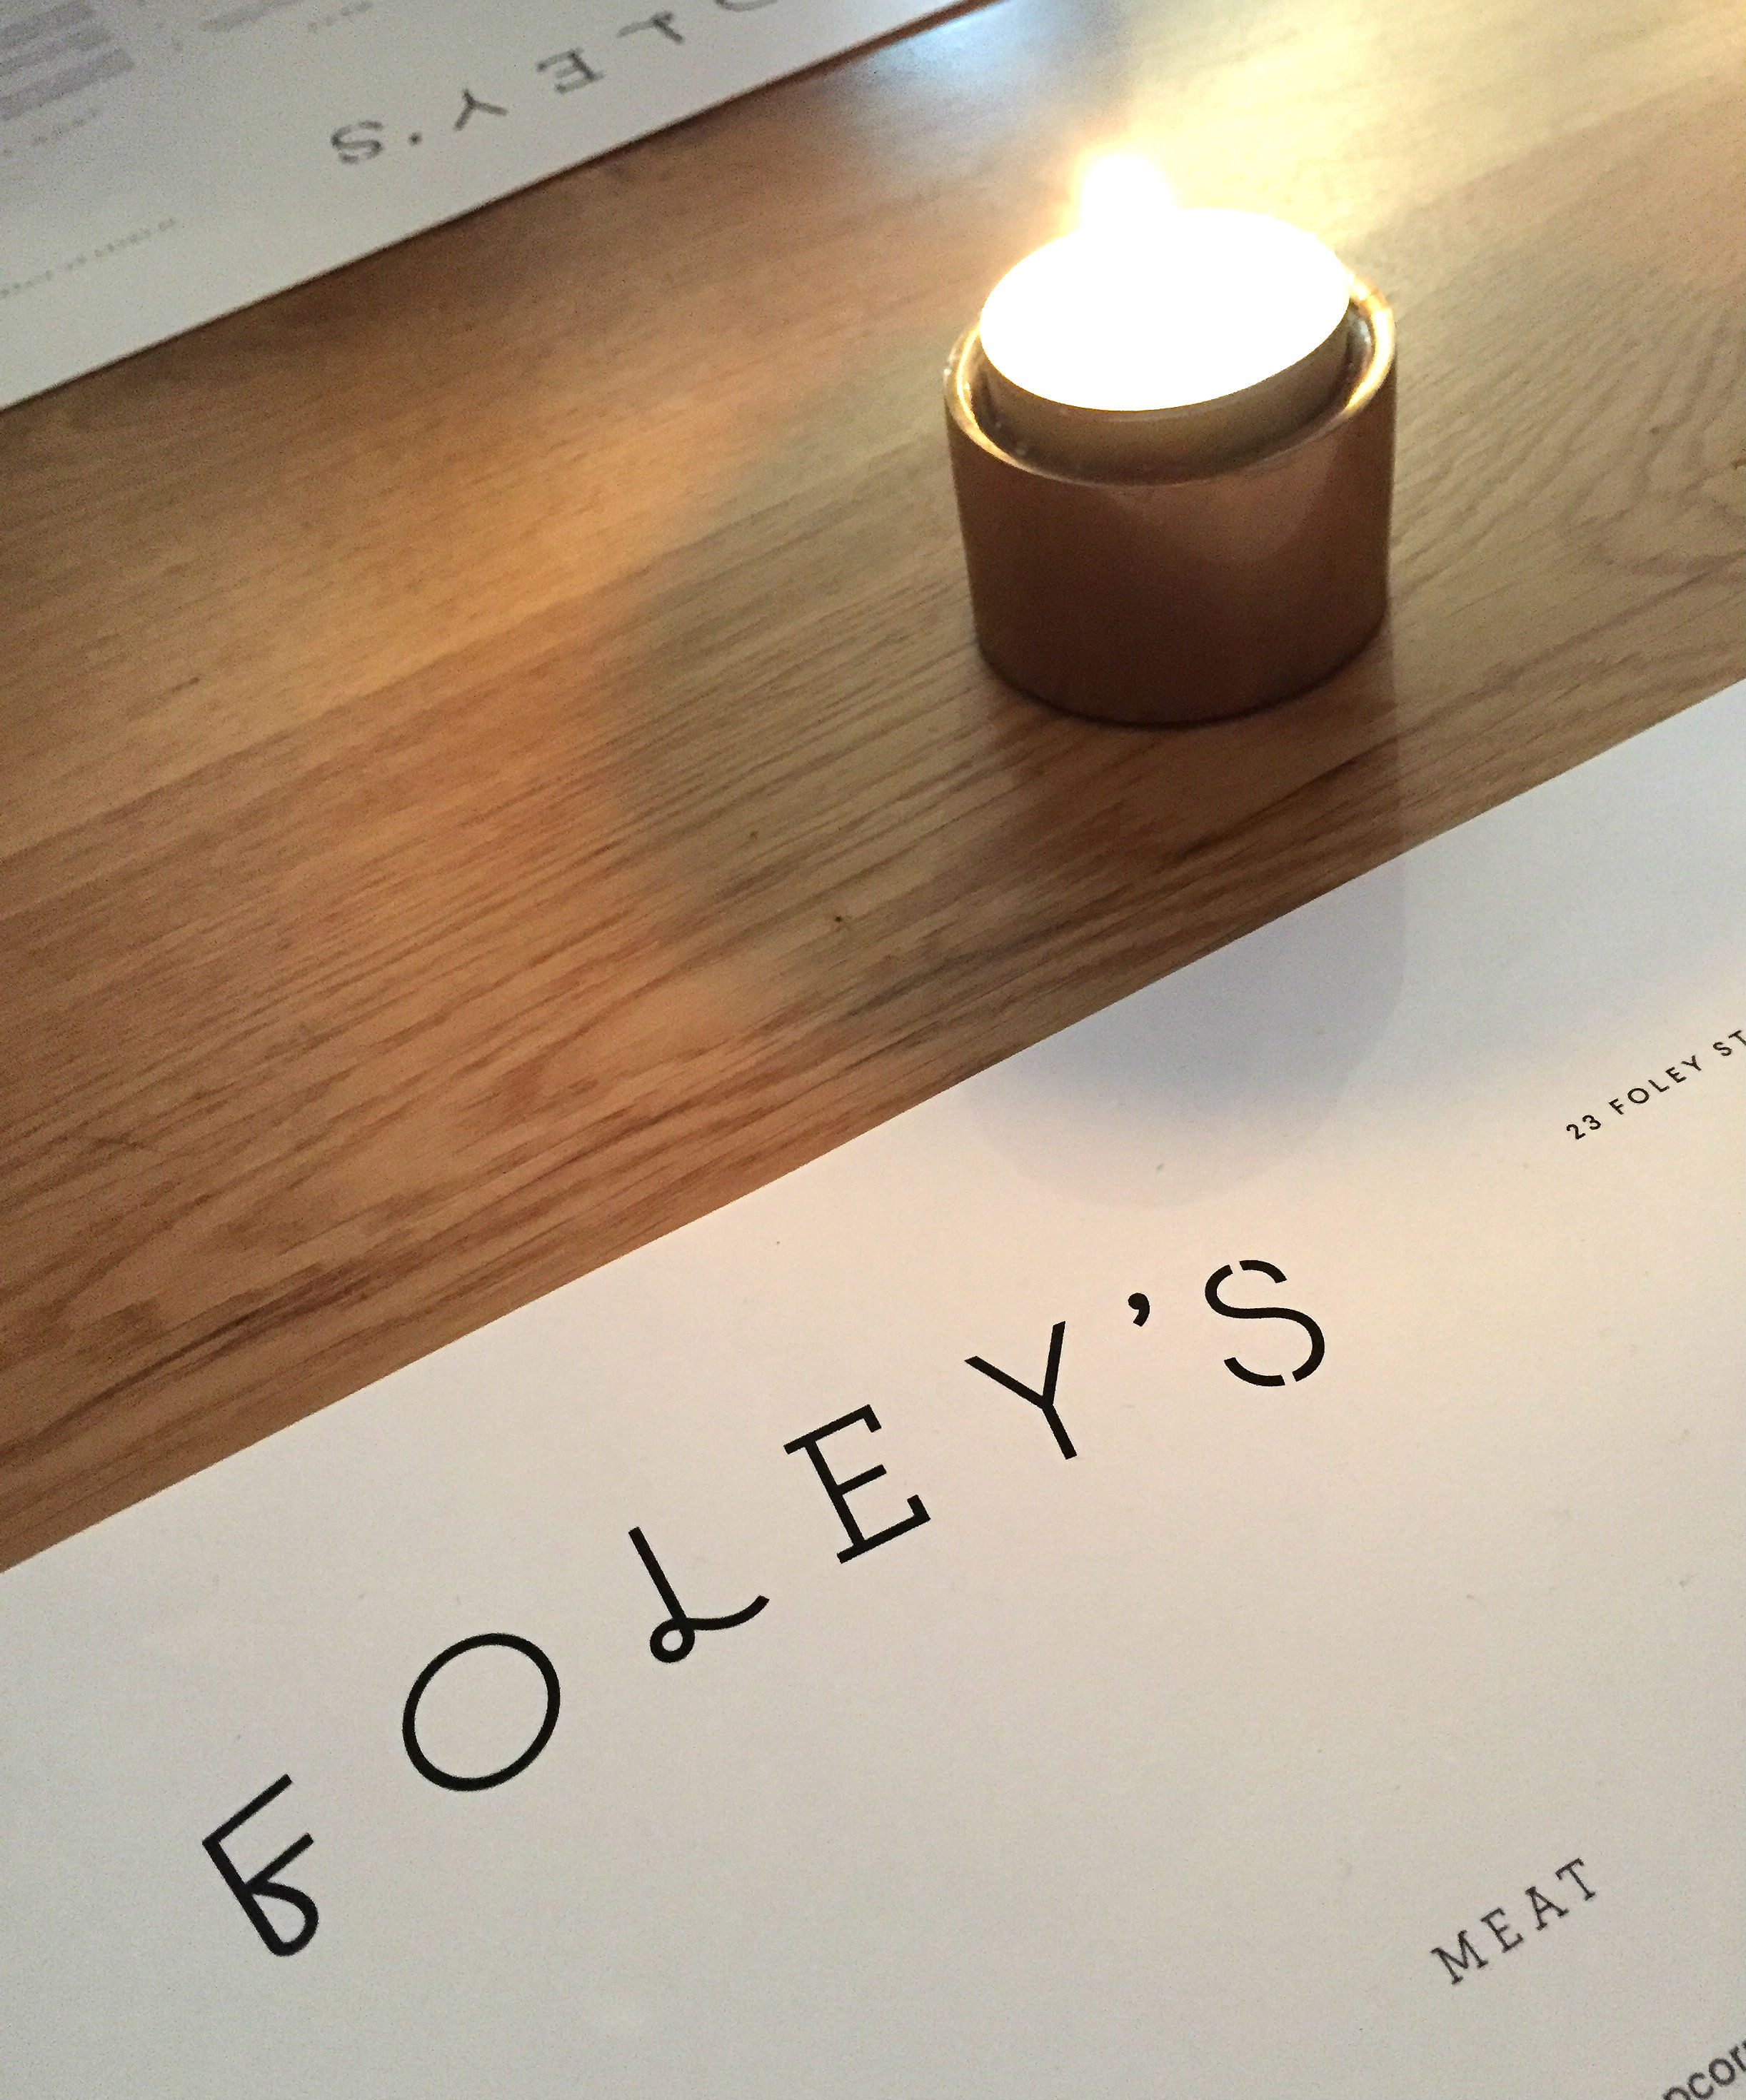 Foley's restaurant review - table